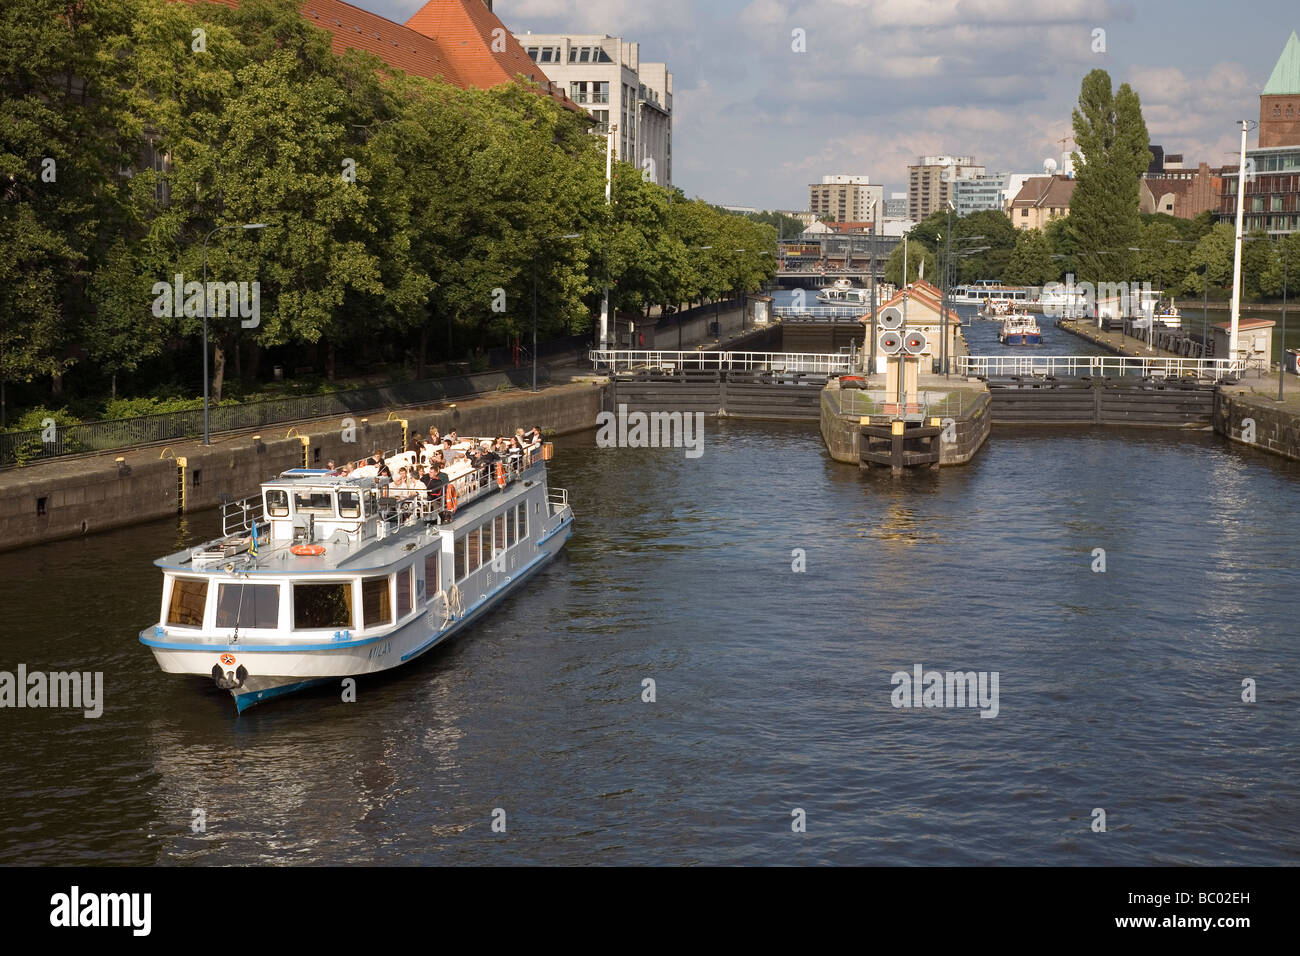 River Spree at Mühlendamm Schleuse with tourist boat, Berlin, Germany - Stock Image